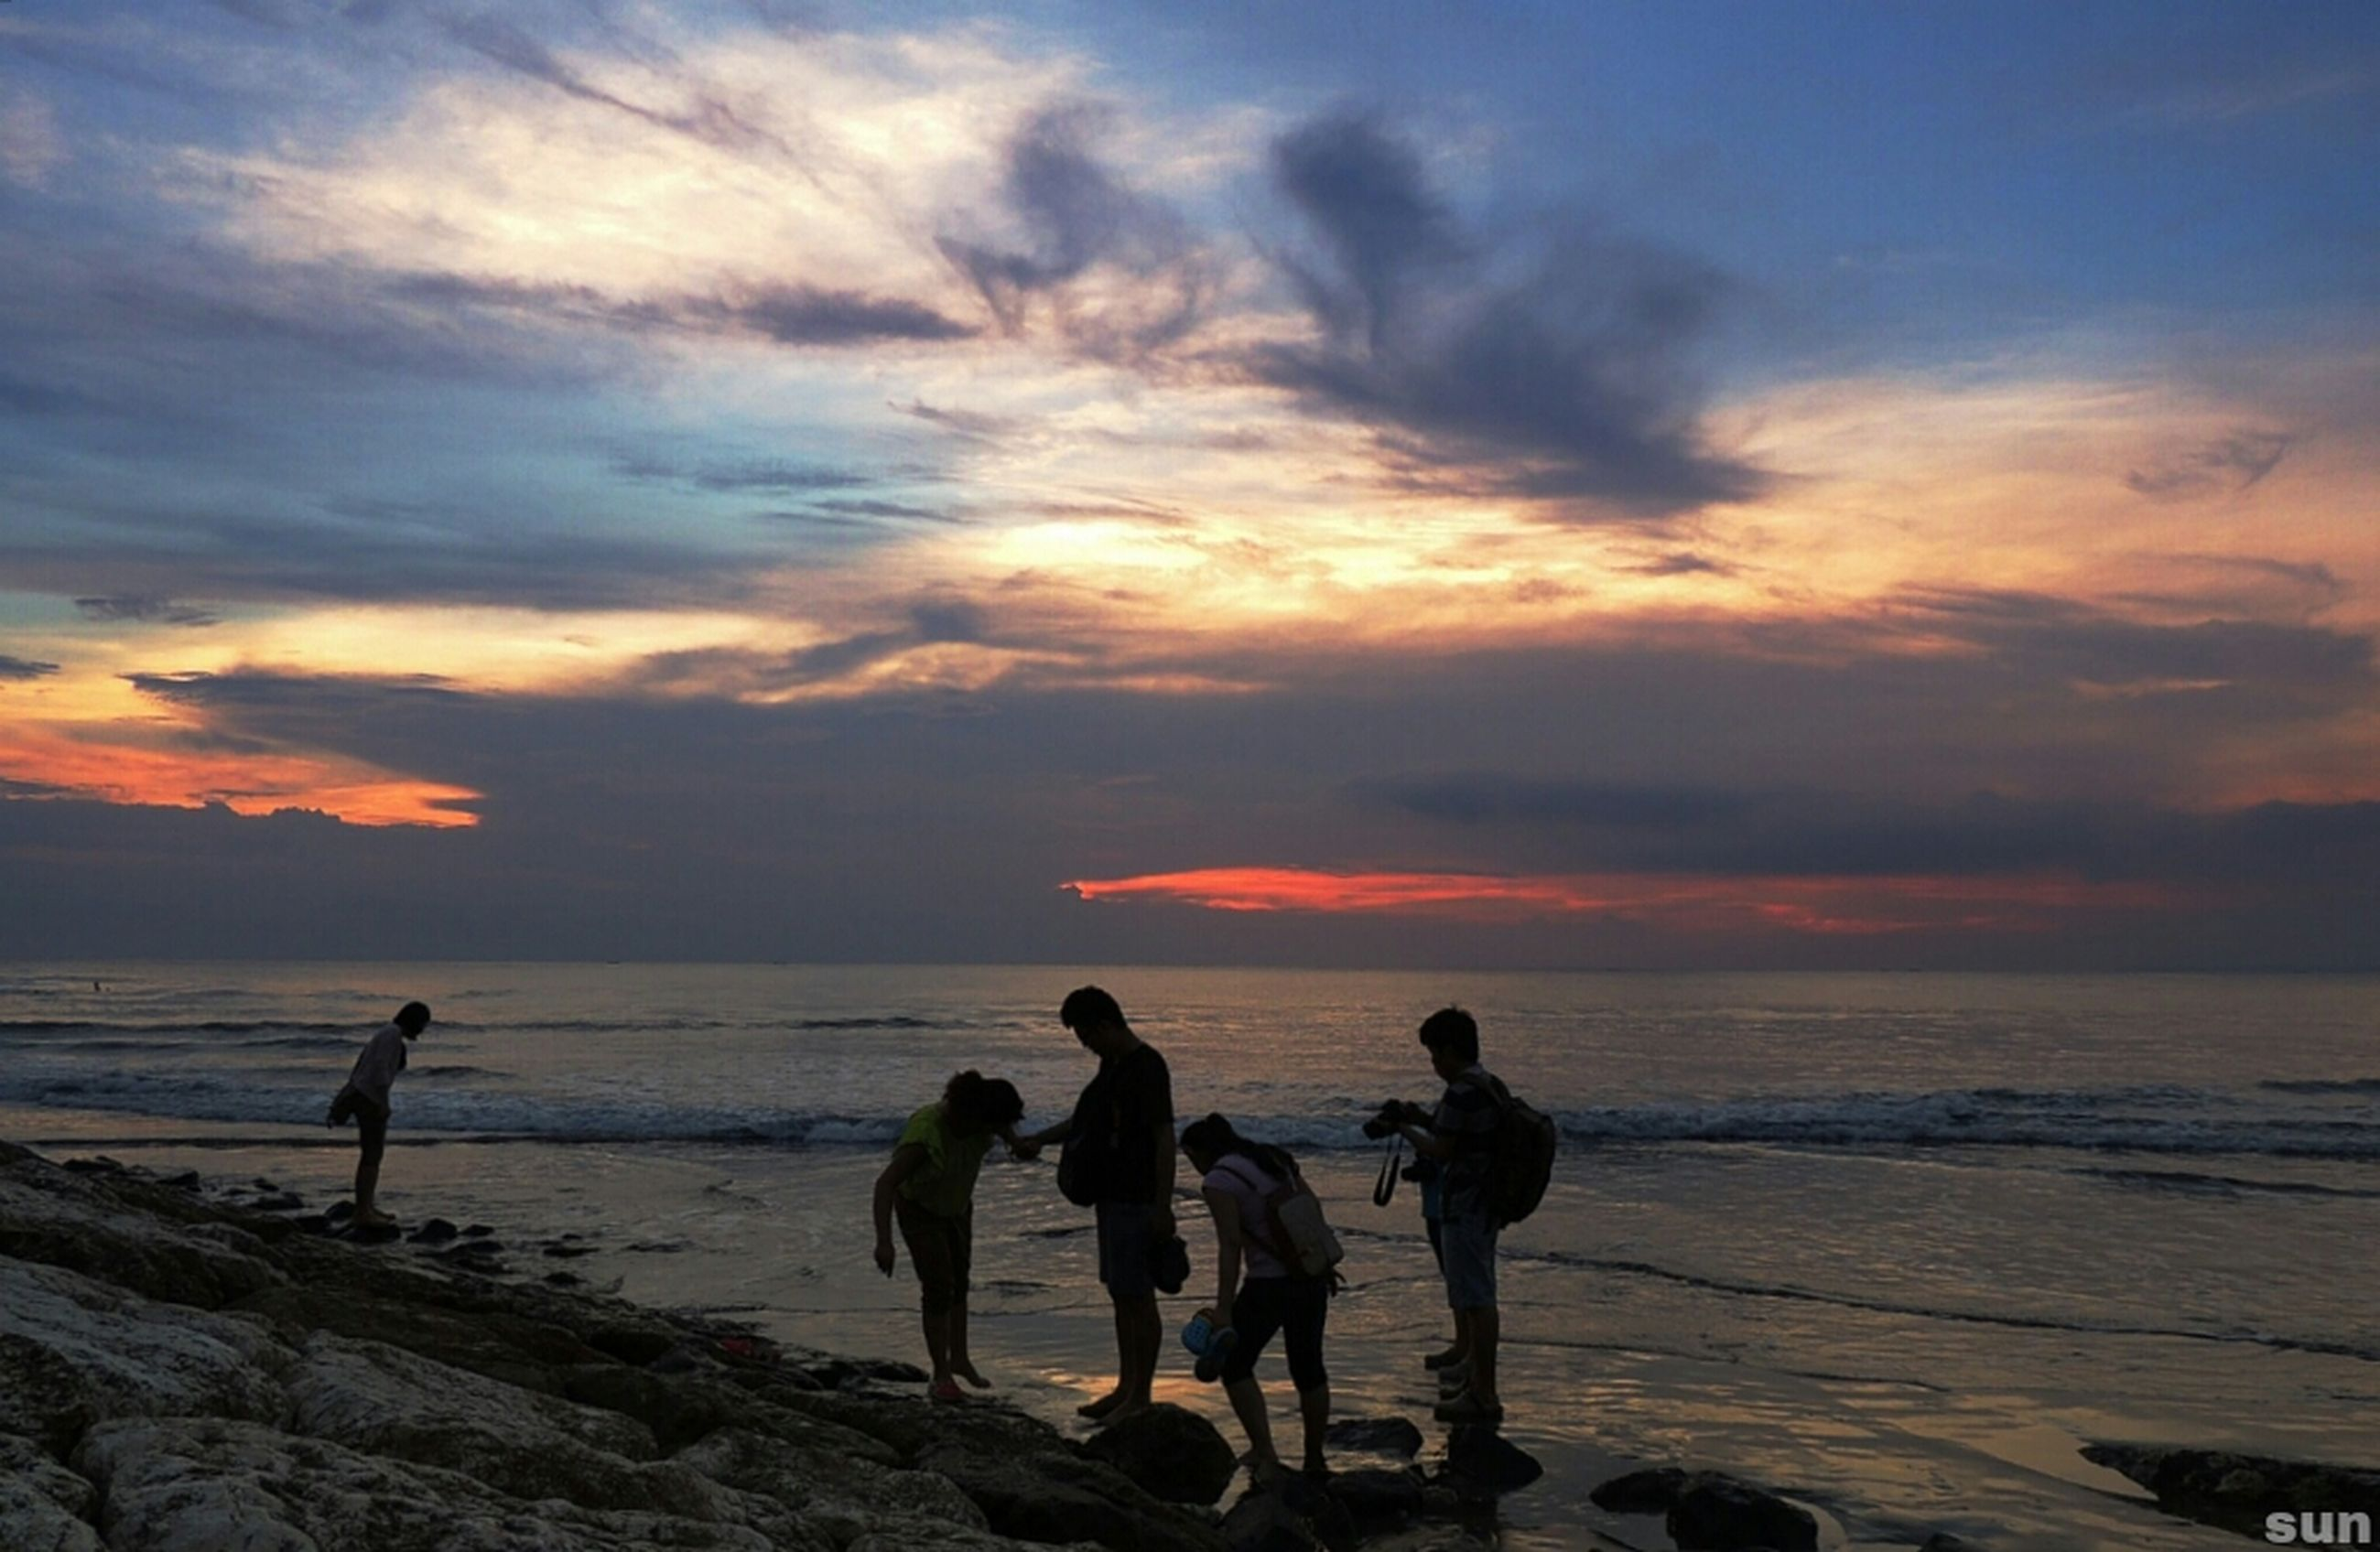 sea, sunset, horizon over water, beach, water, sky, shore, scenics, beauty in nature, silhouette, cloud - sky, tranquil scene, orange color, tranquility, leisure activity, nature, men, idyllic, lifestyles